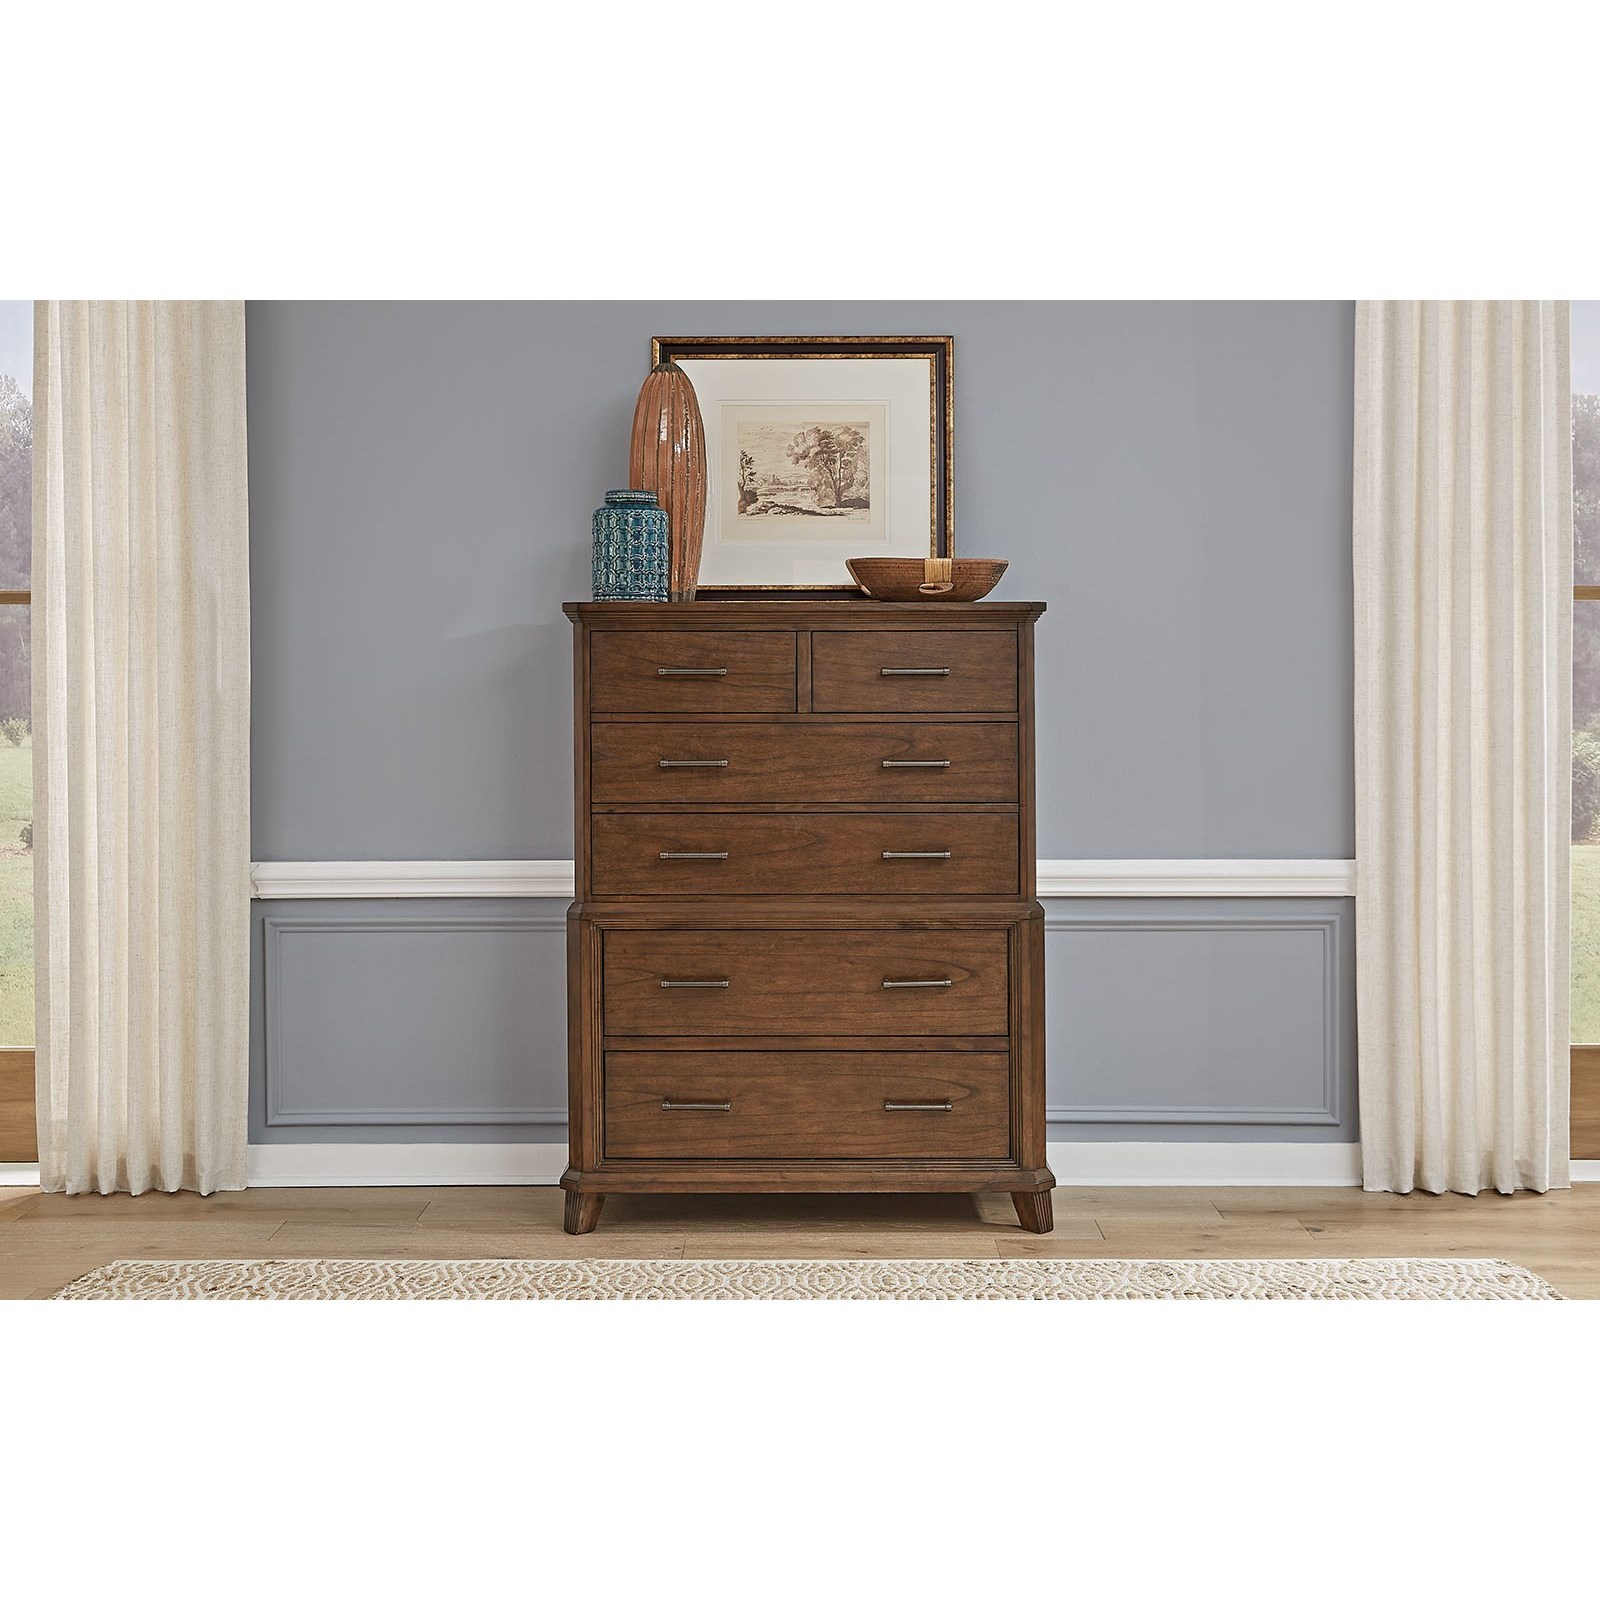 Filson Creek 6-Drawer Chest by A-A at Walker's Furniture